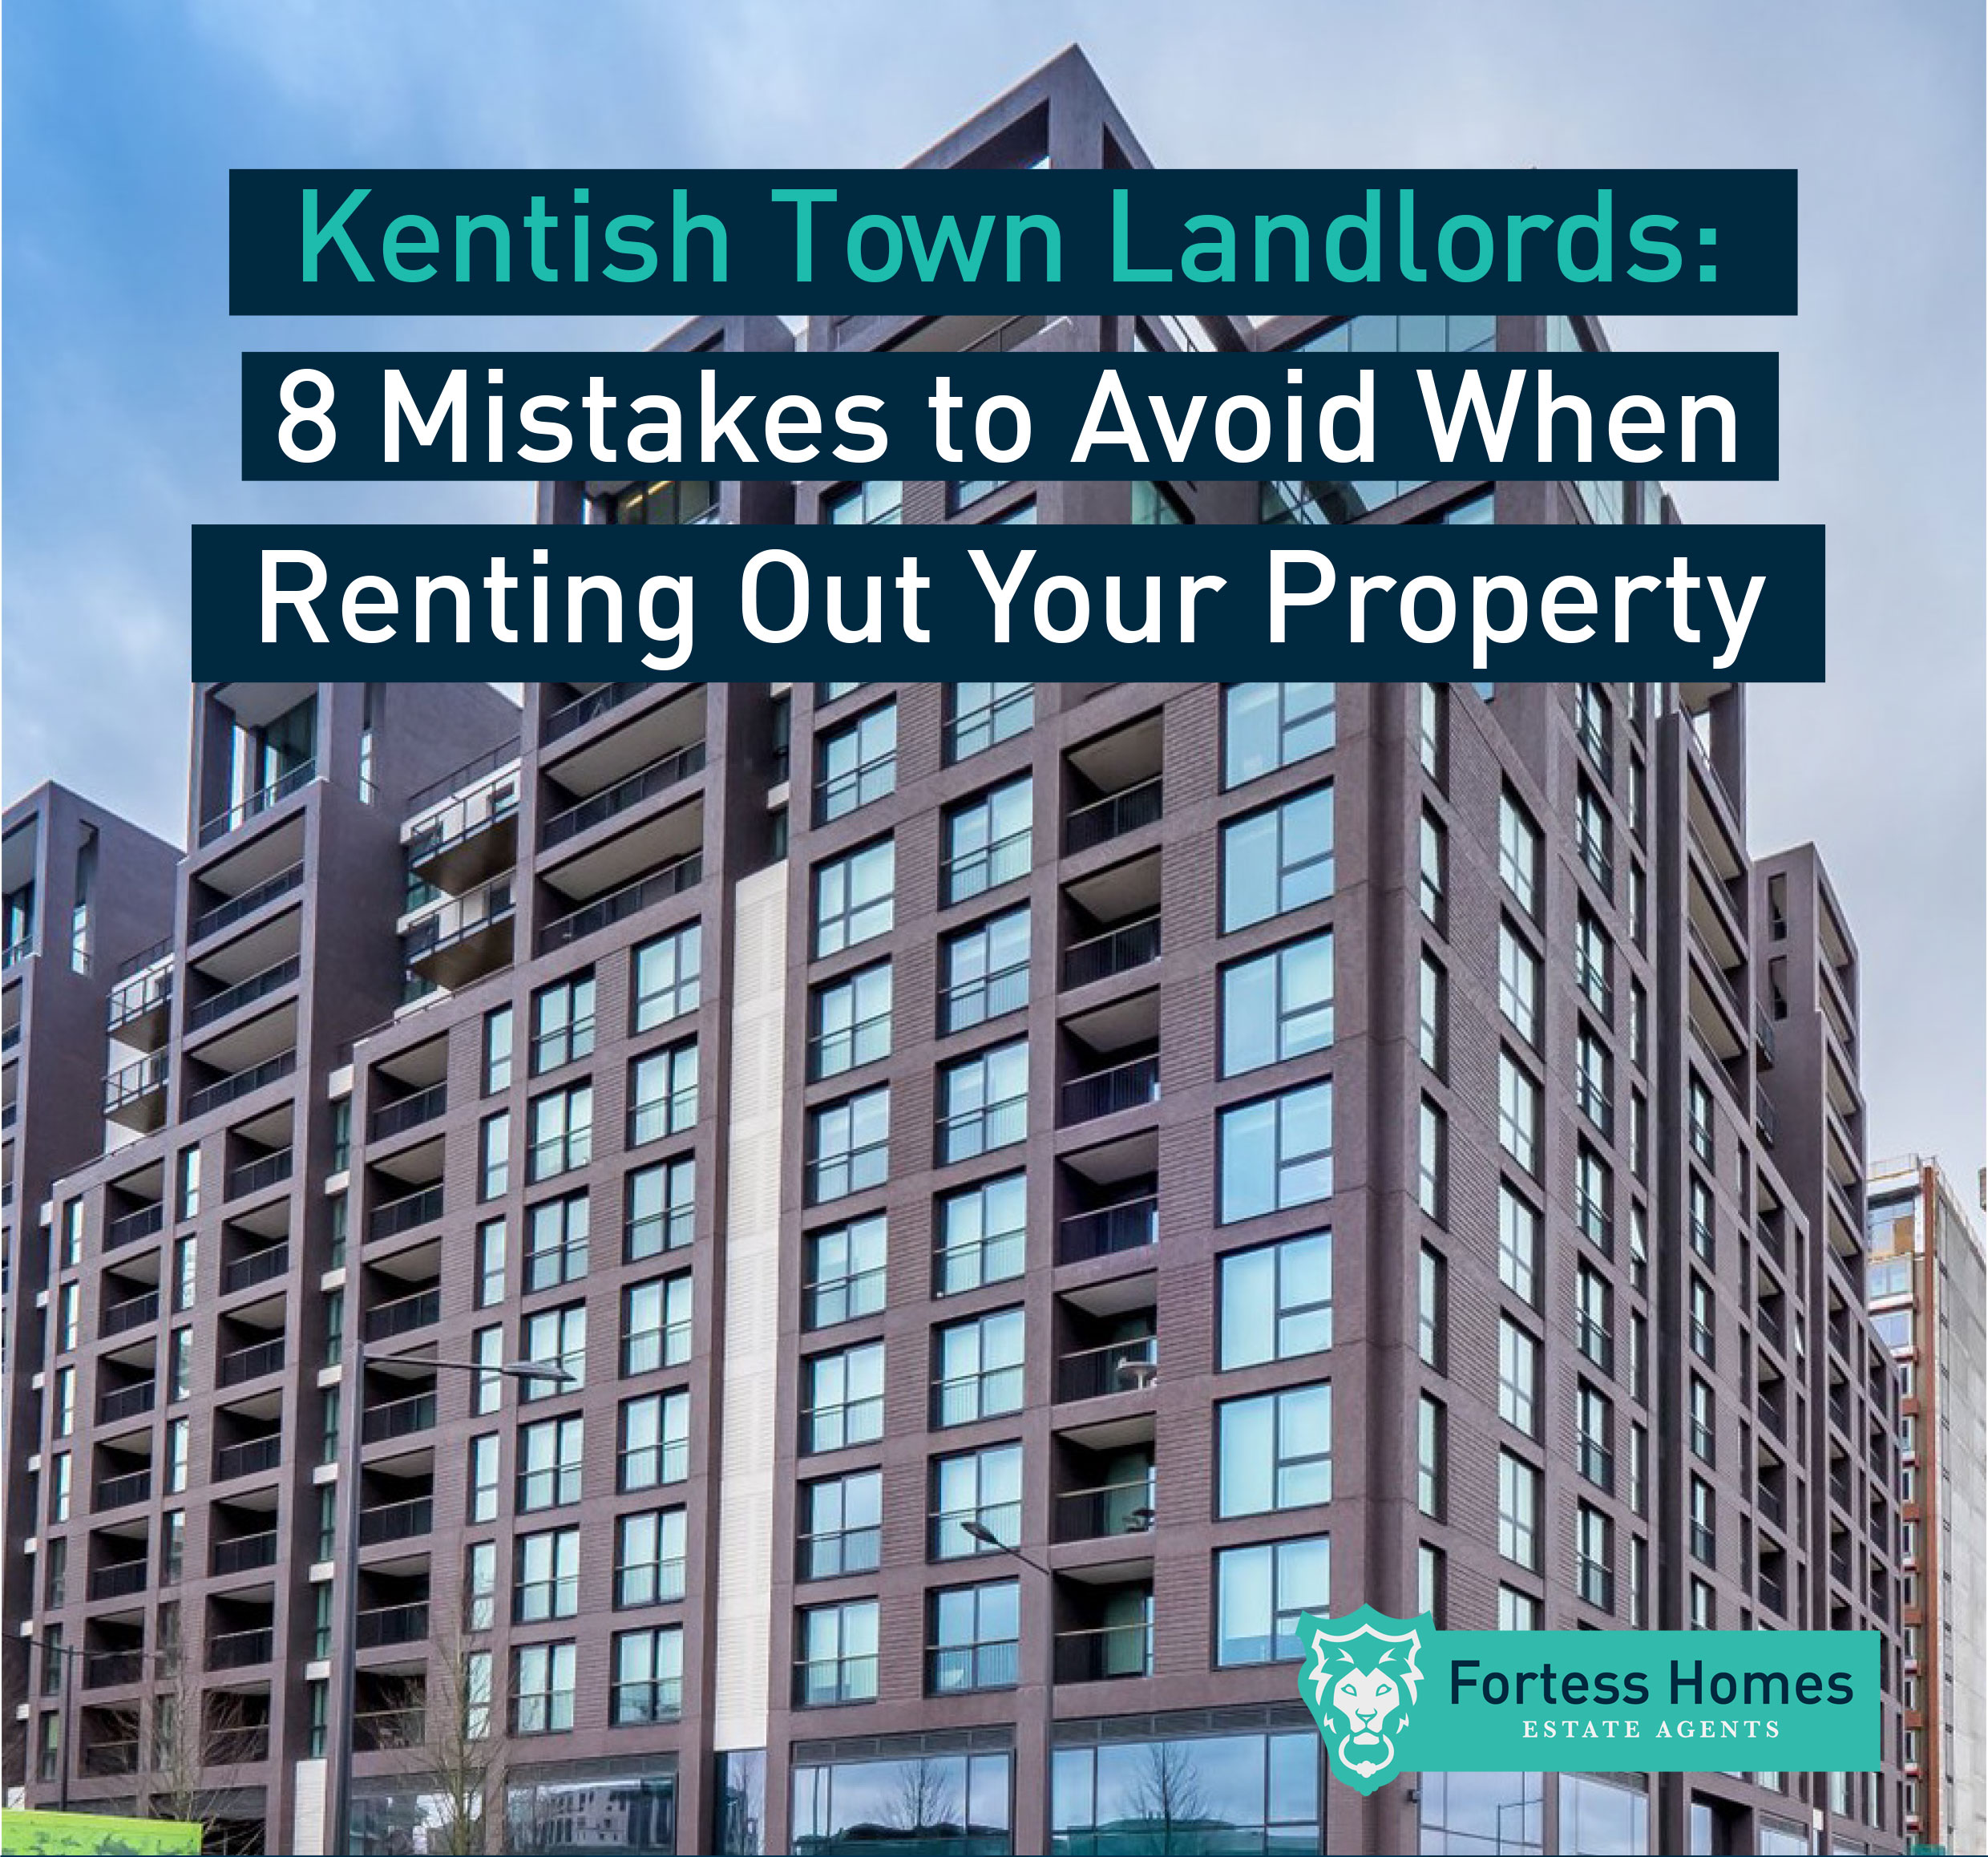 Kentish Town Landlords:8 Mistakes to Avoid When Renting Out Your Property